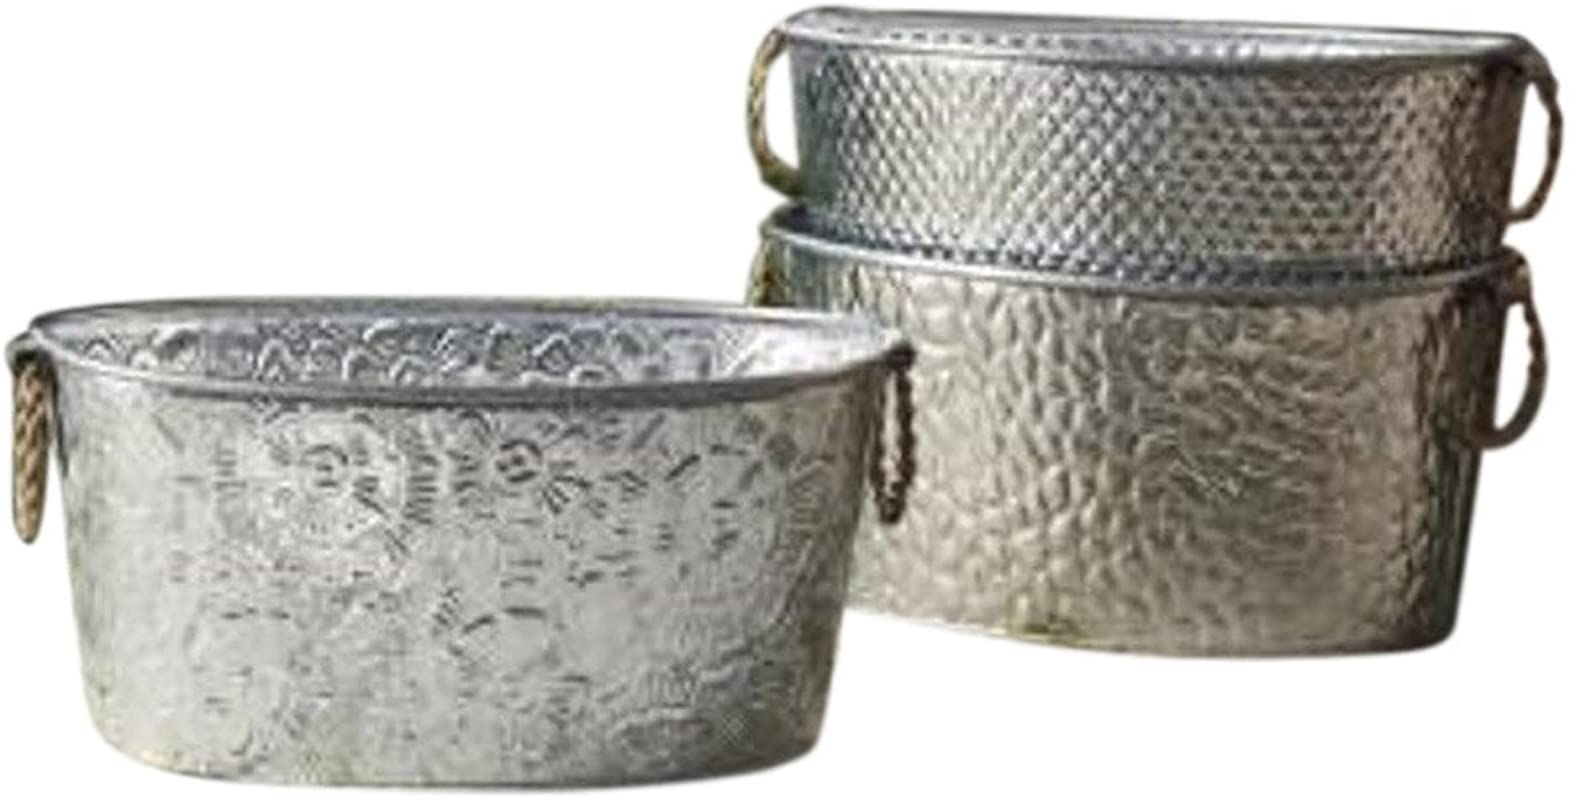 Oval Assorted Galvanized Tubs With Metal Handles 1 Per Order